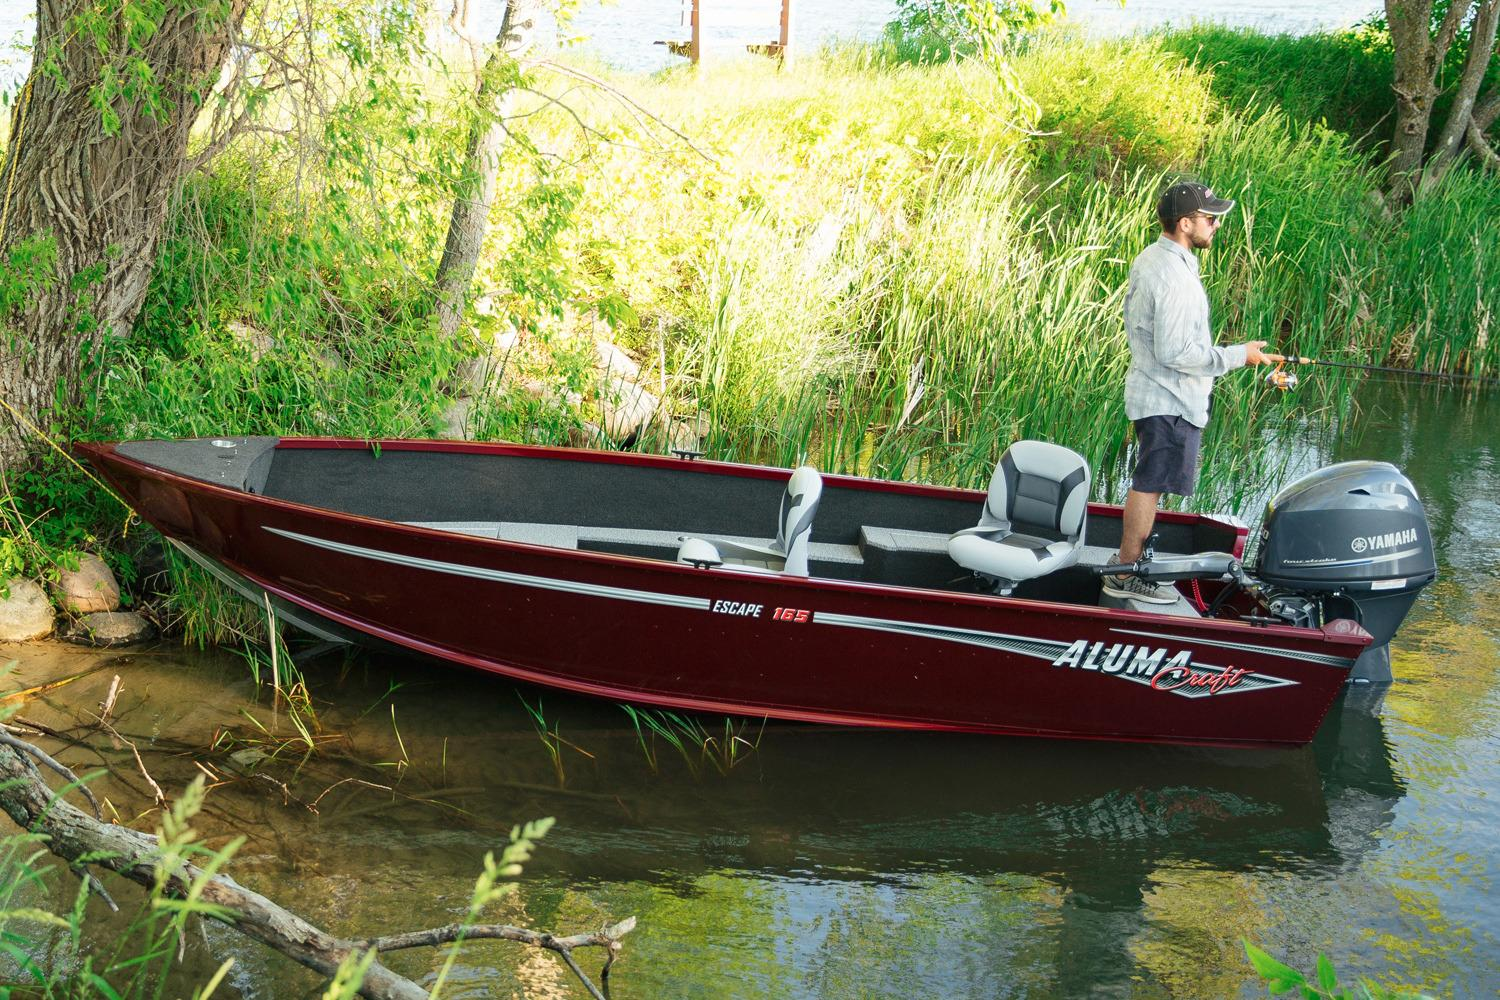 2018 Alumacraft Escape 165 Tiller in Black River Falls, Wisconsin